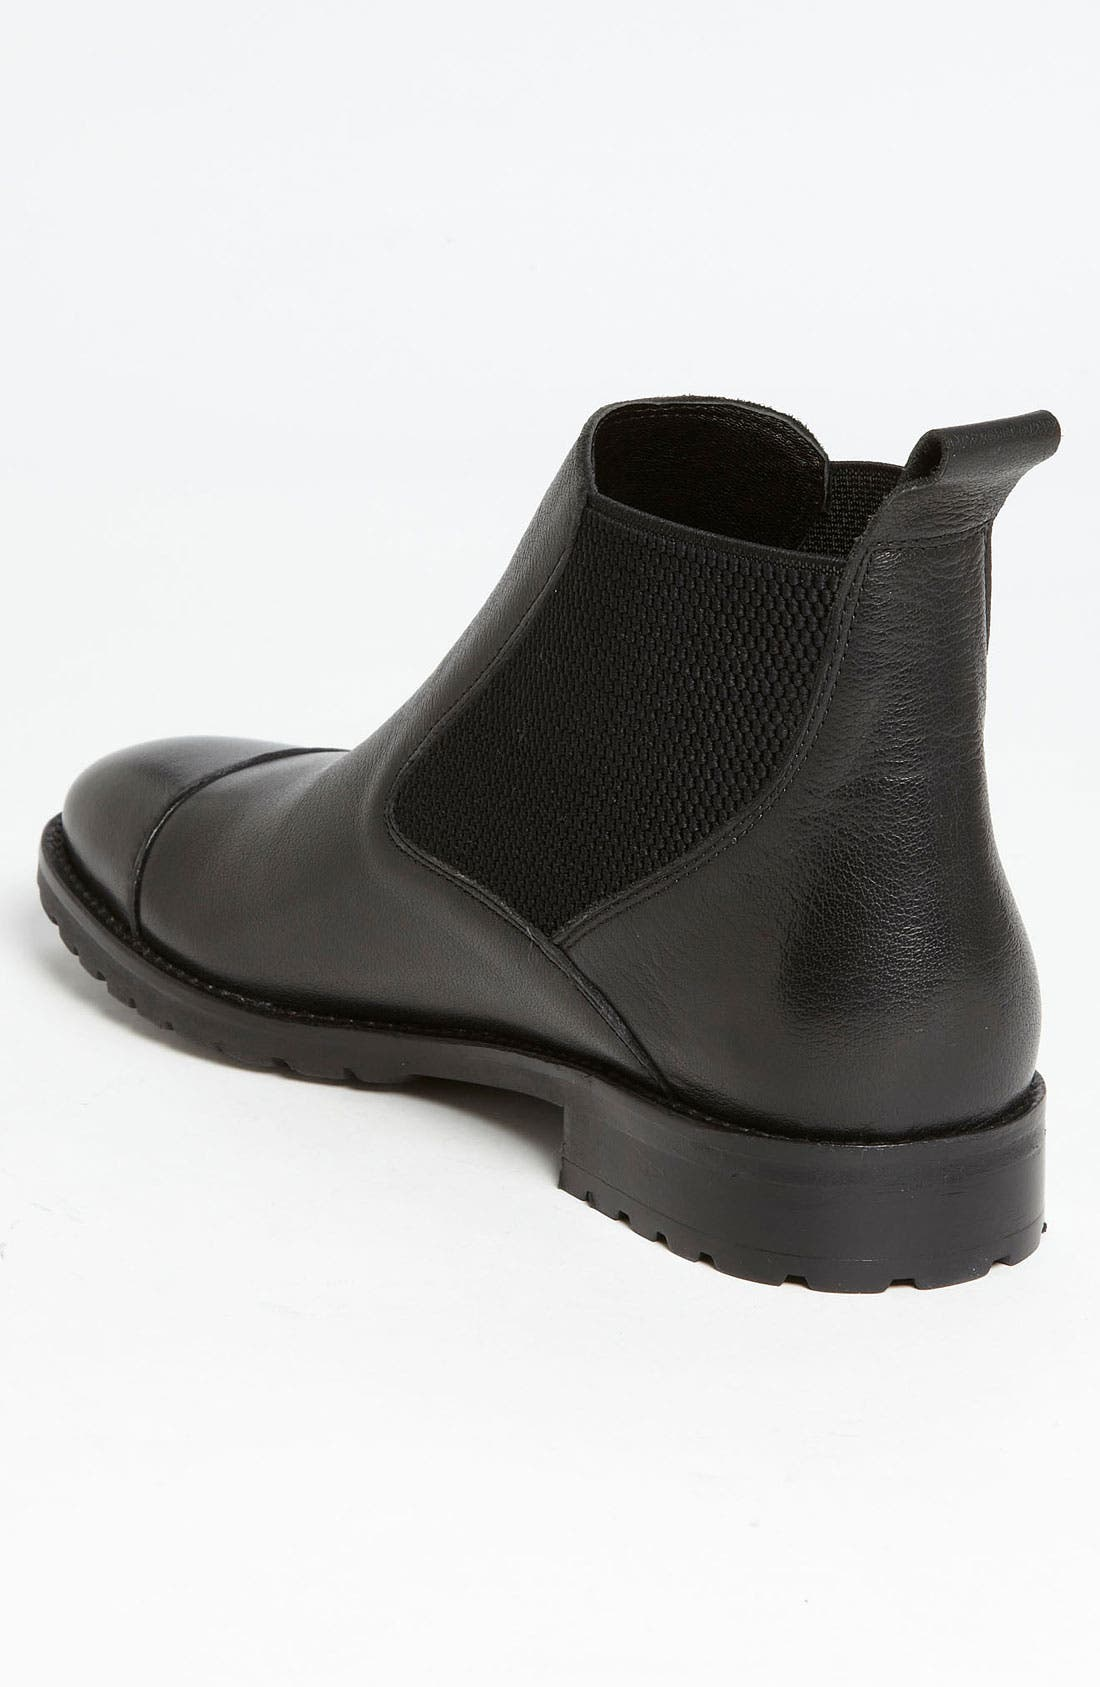 Alternate Image 2  - Maison Forte 'Carlos' Chelsea Boot